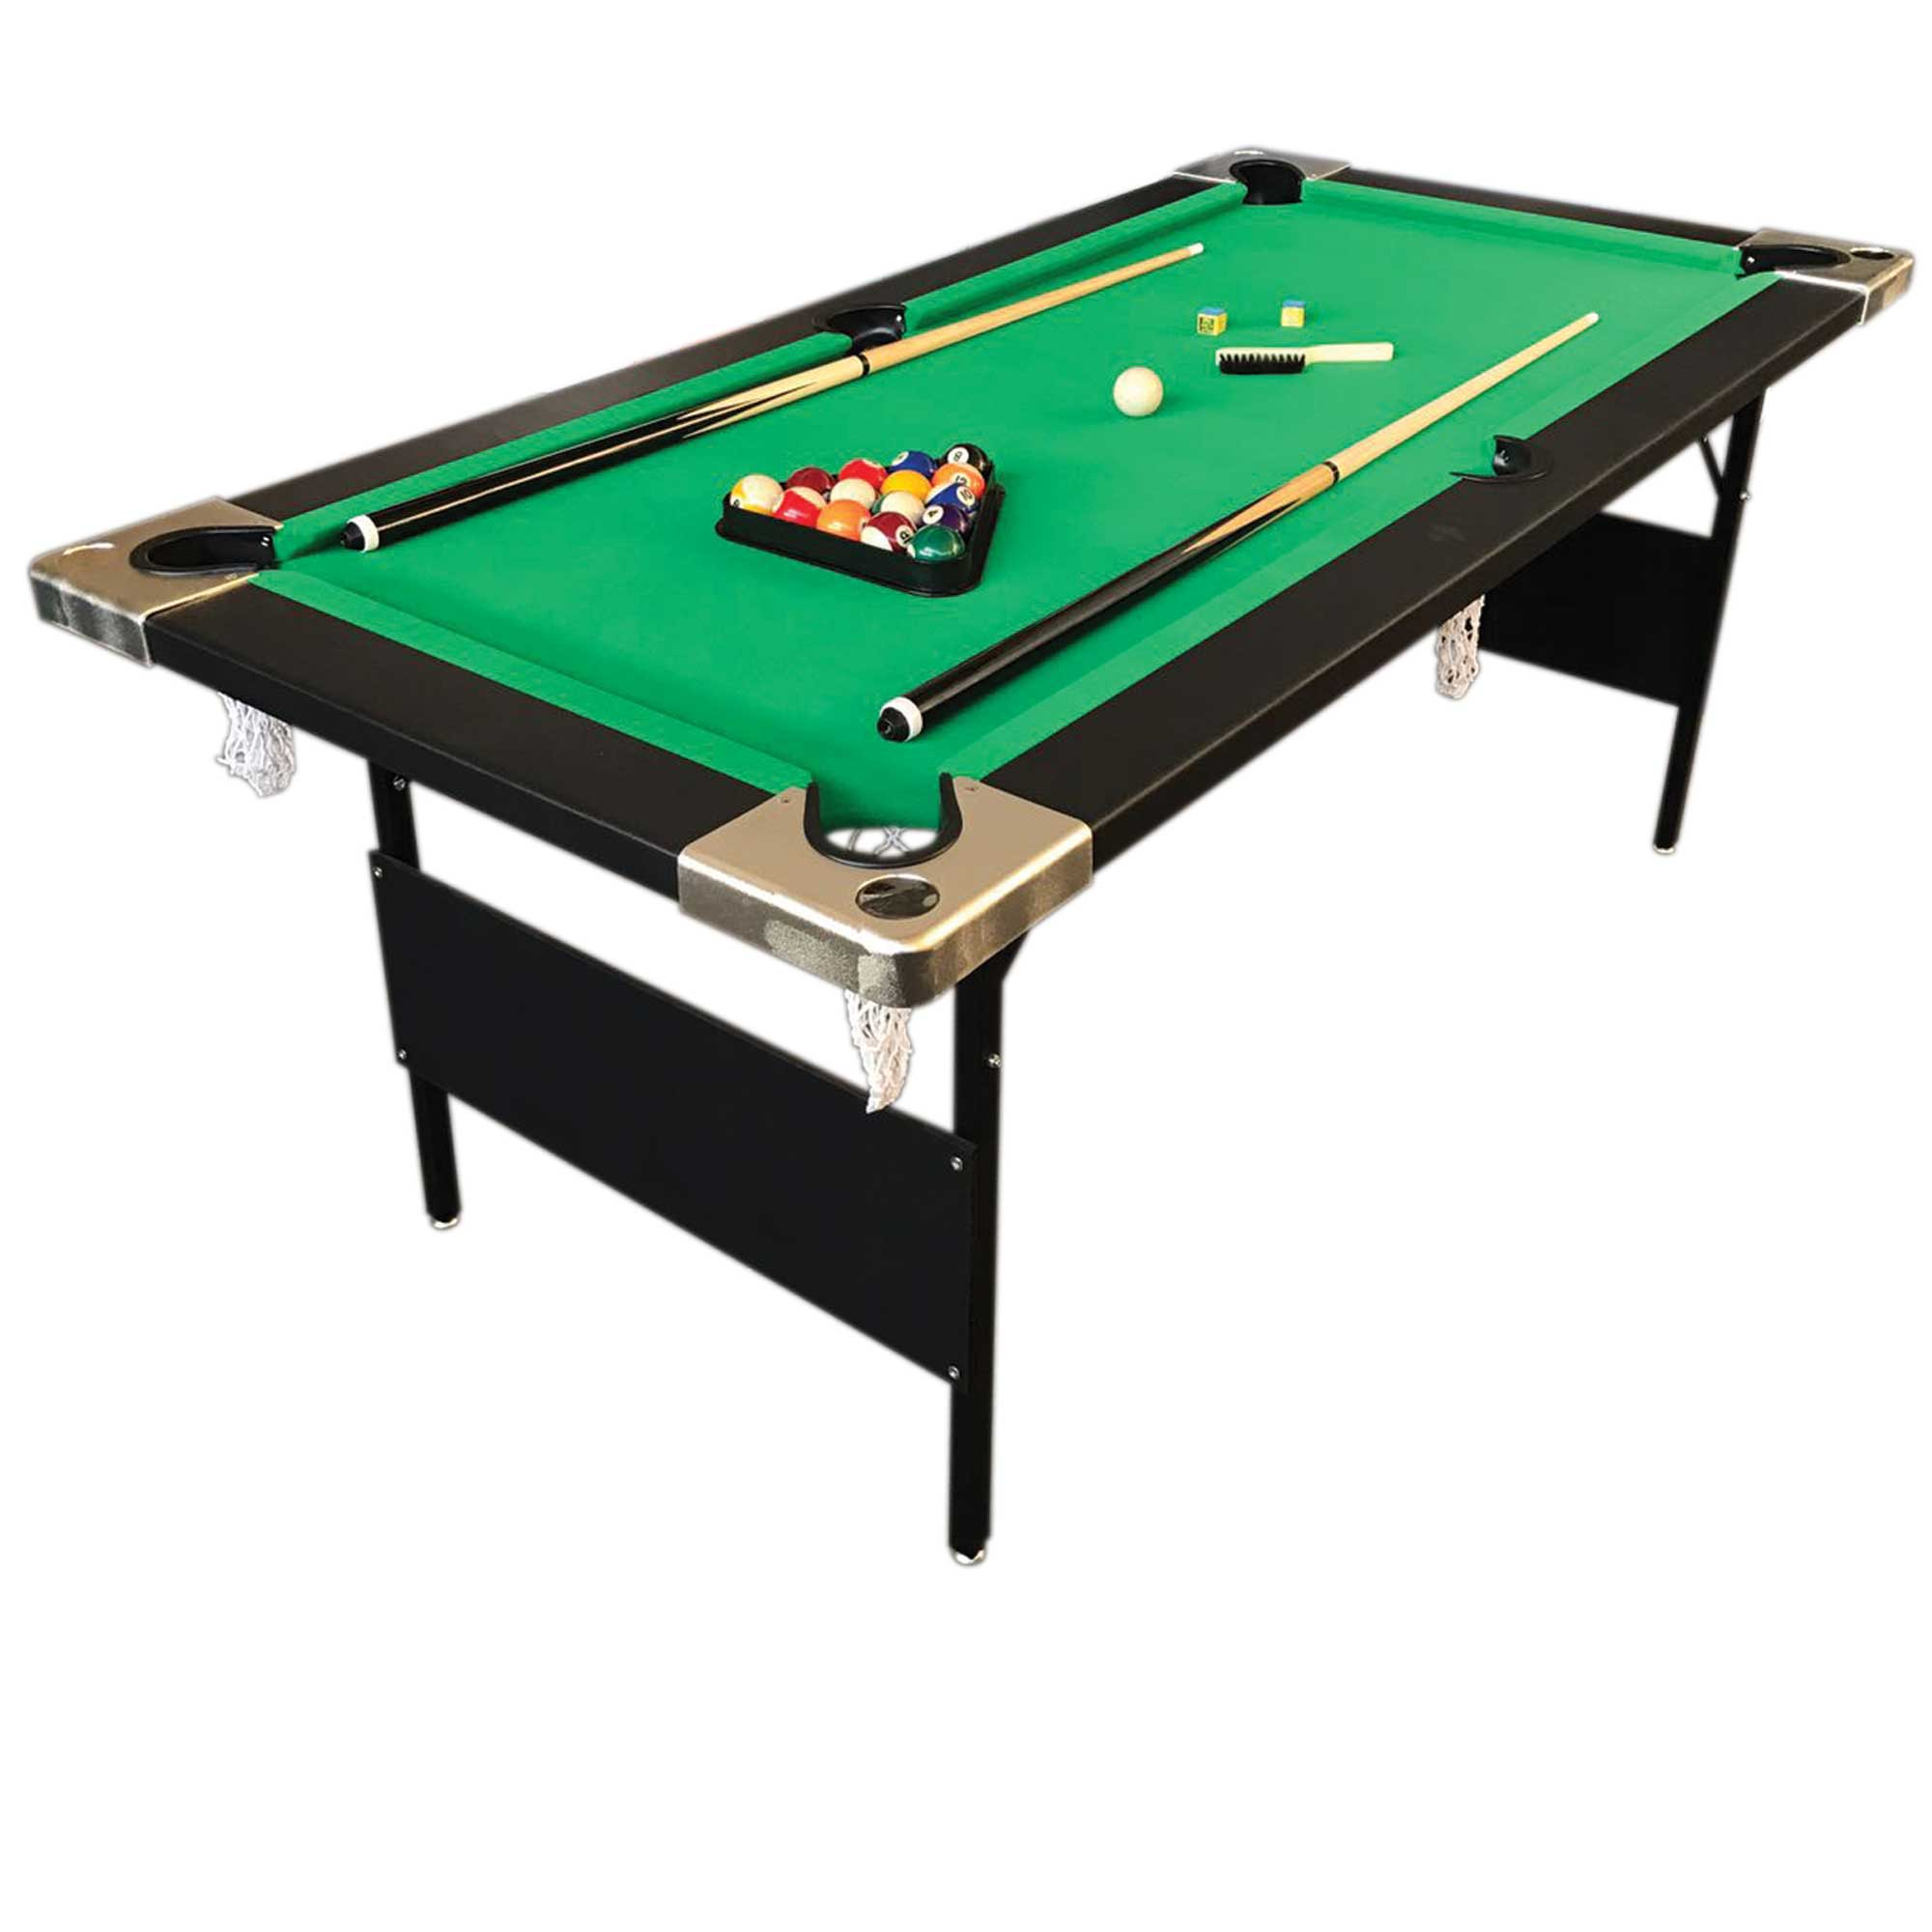 6 39 feet billiard pool table portable snooker accessories for Table 6 feet